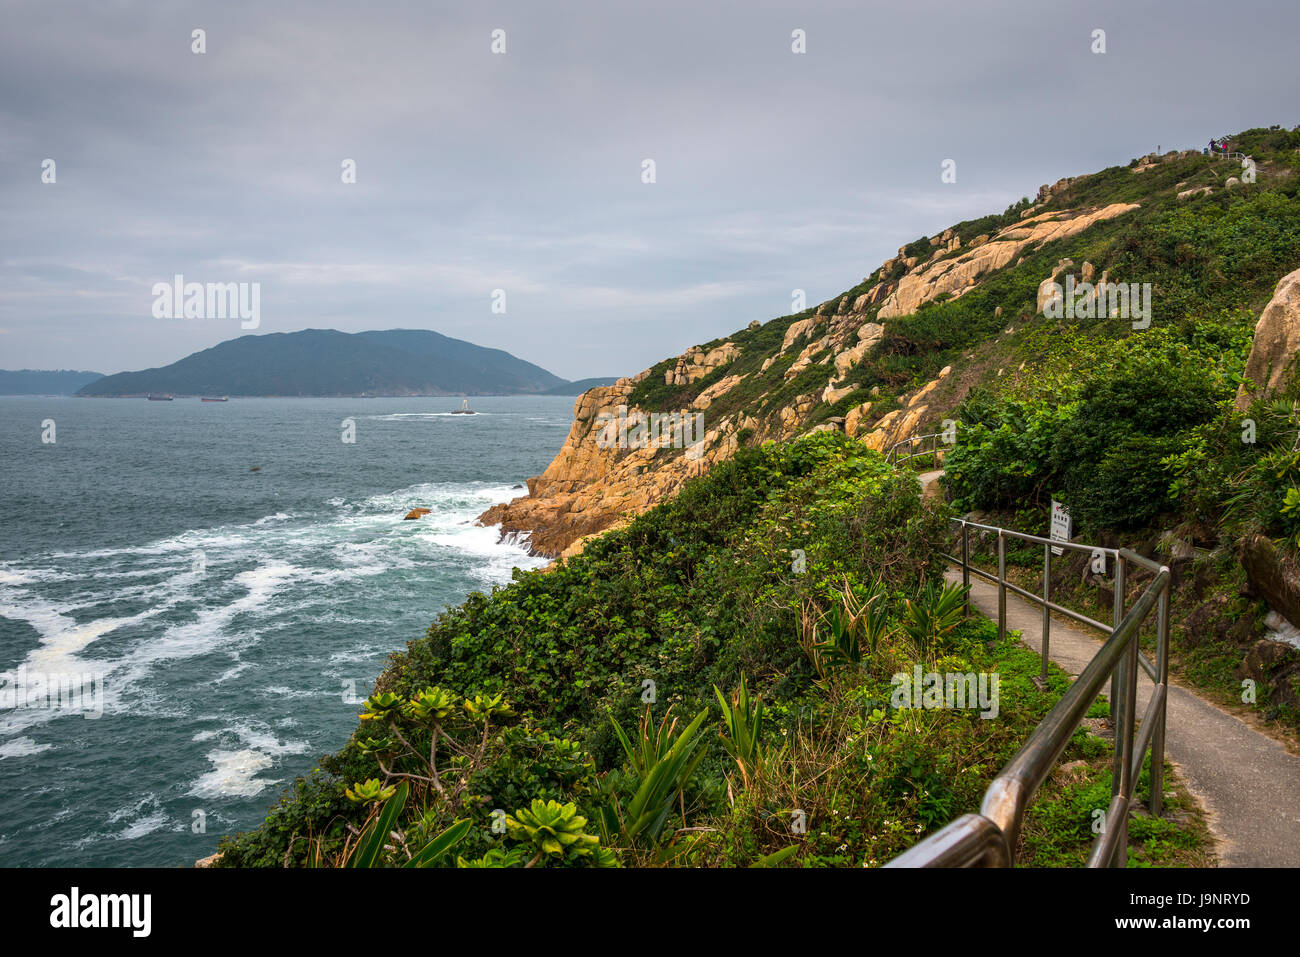 Shek-O Coastline and Islands, Hong Kong and South China Sea - Stock Image